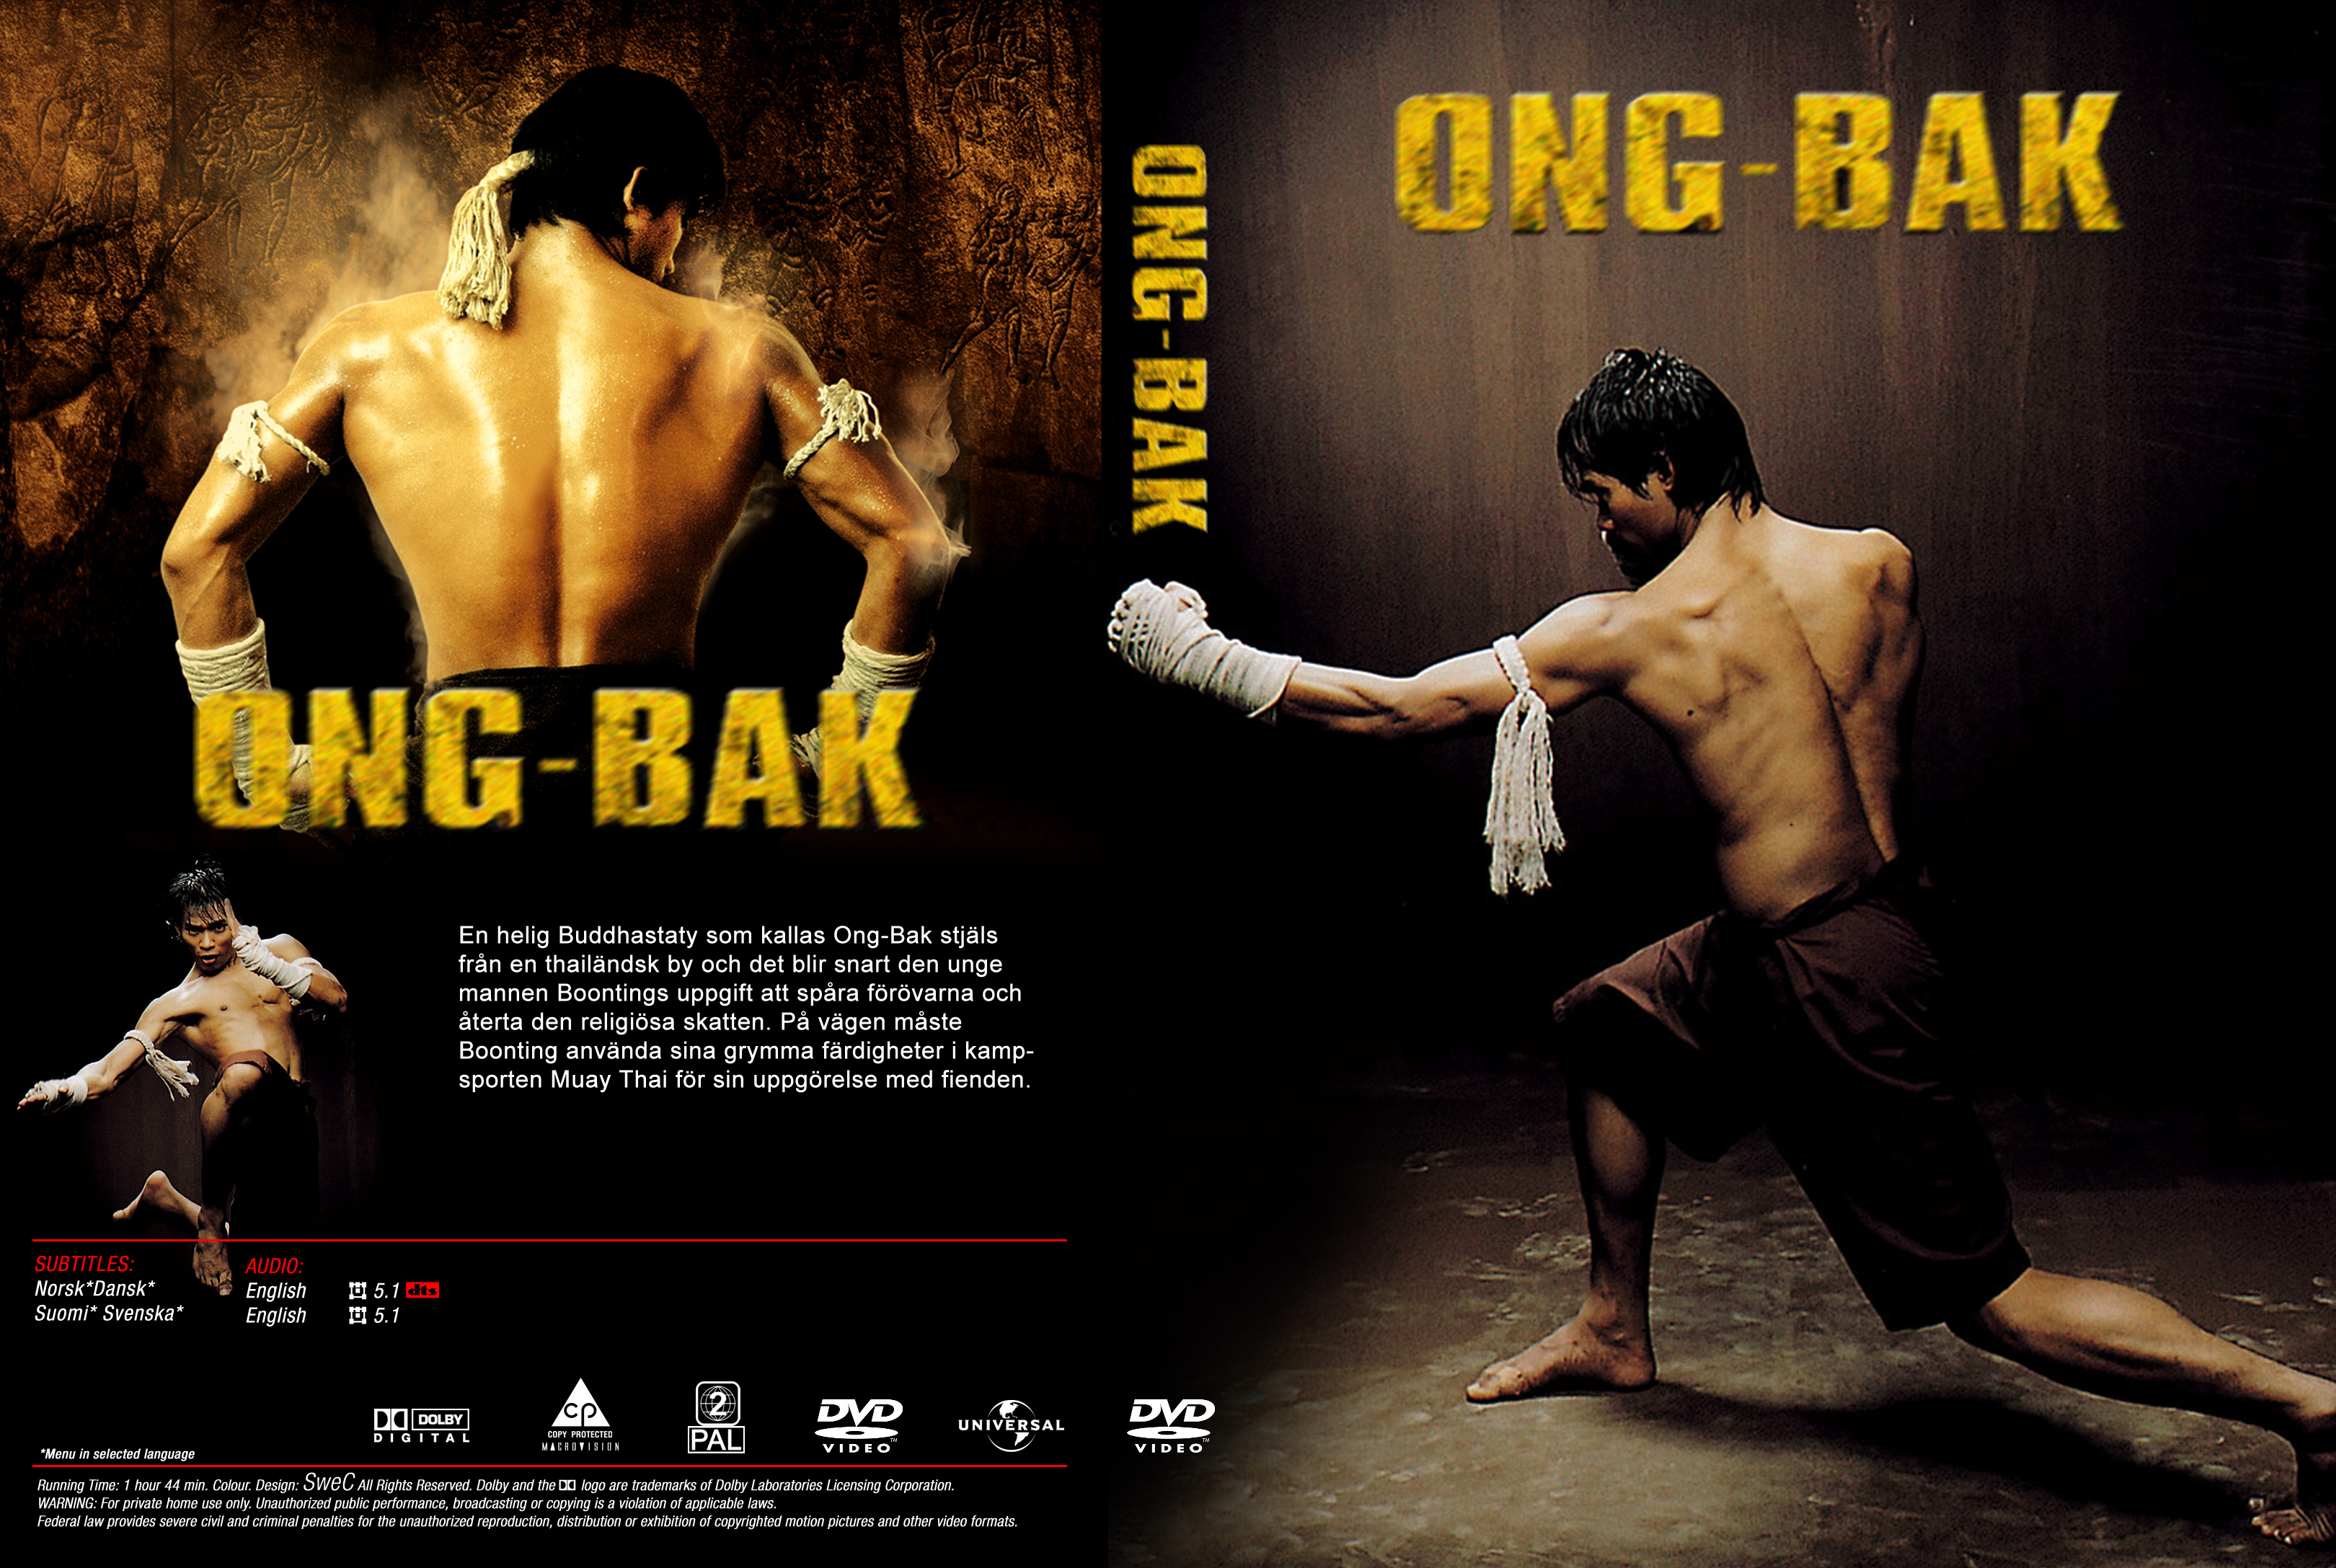 Ong bak movie download free